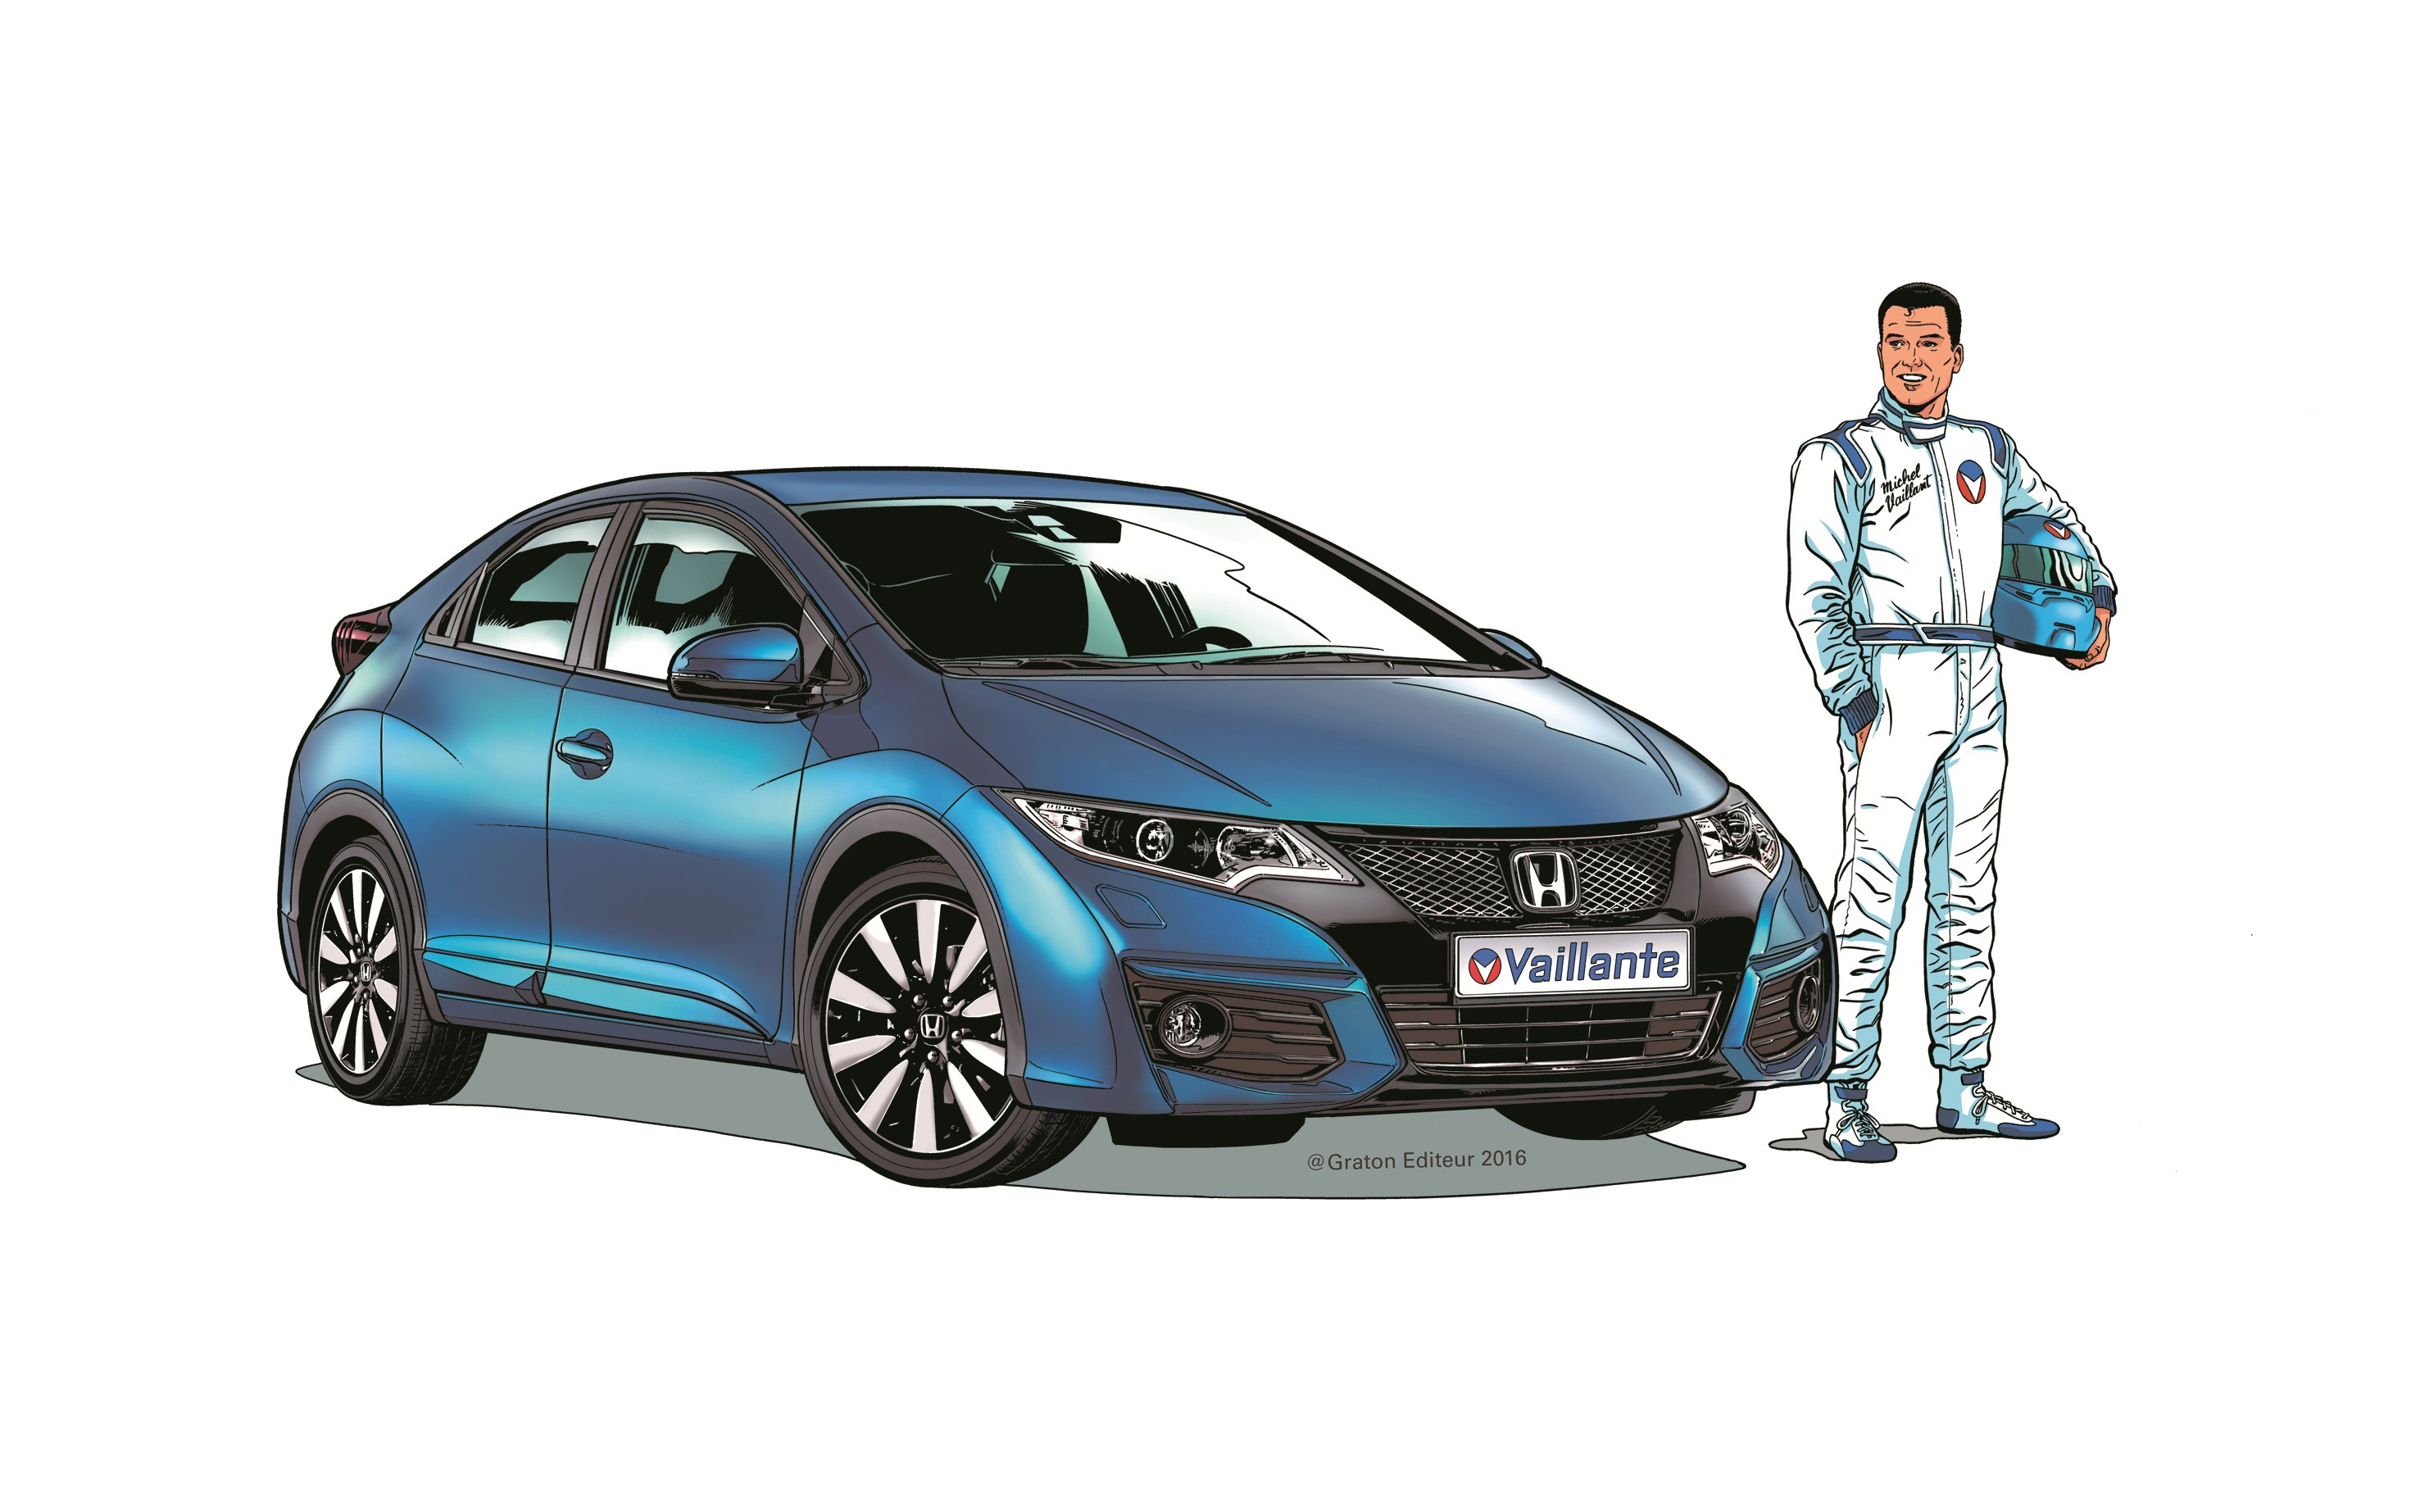 Honda Civic Vaillante - 2016 - front - drawing